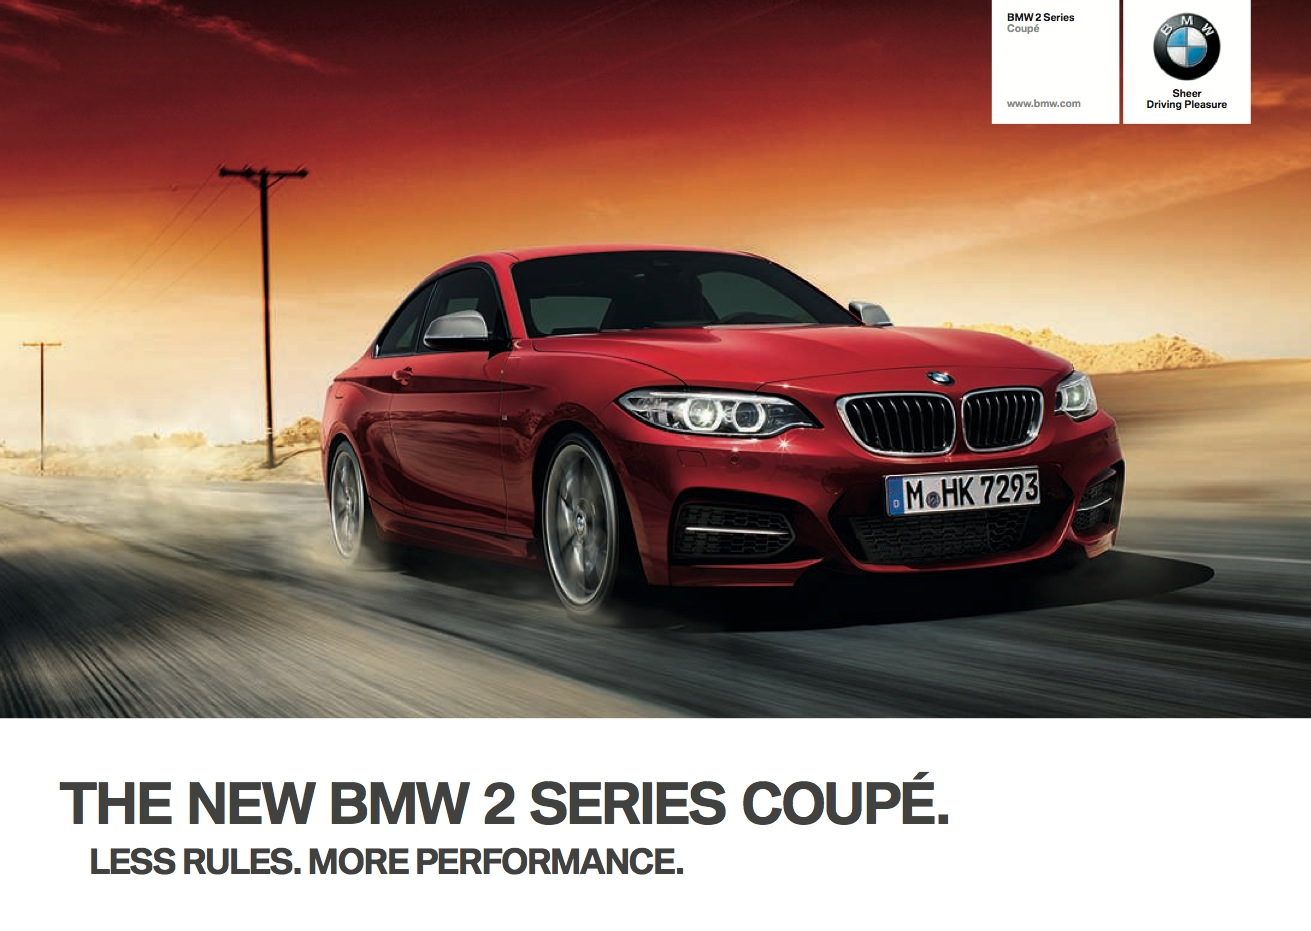 Bmw 2 Series Coupe Brochure